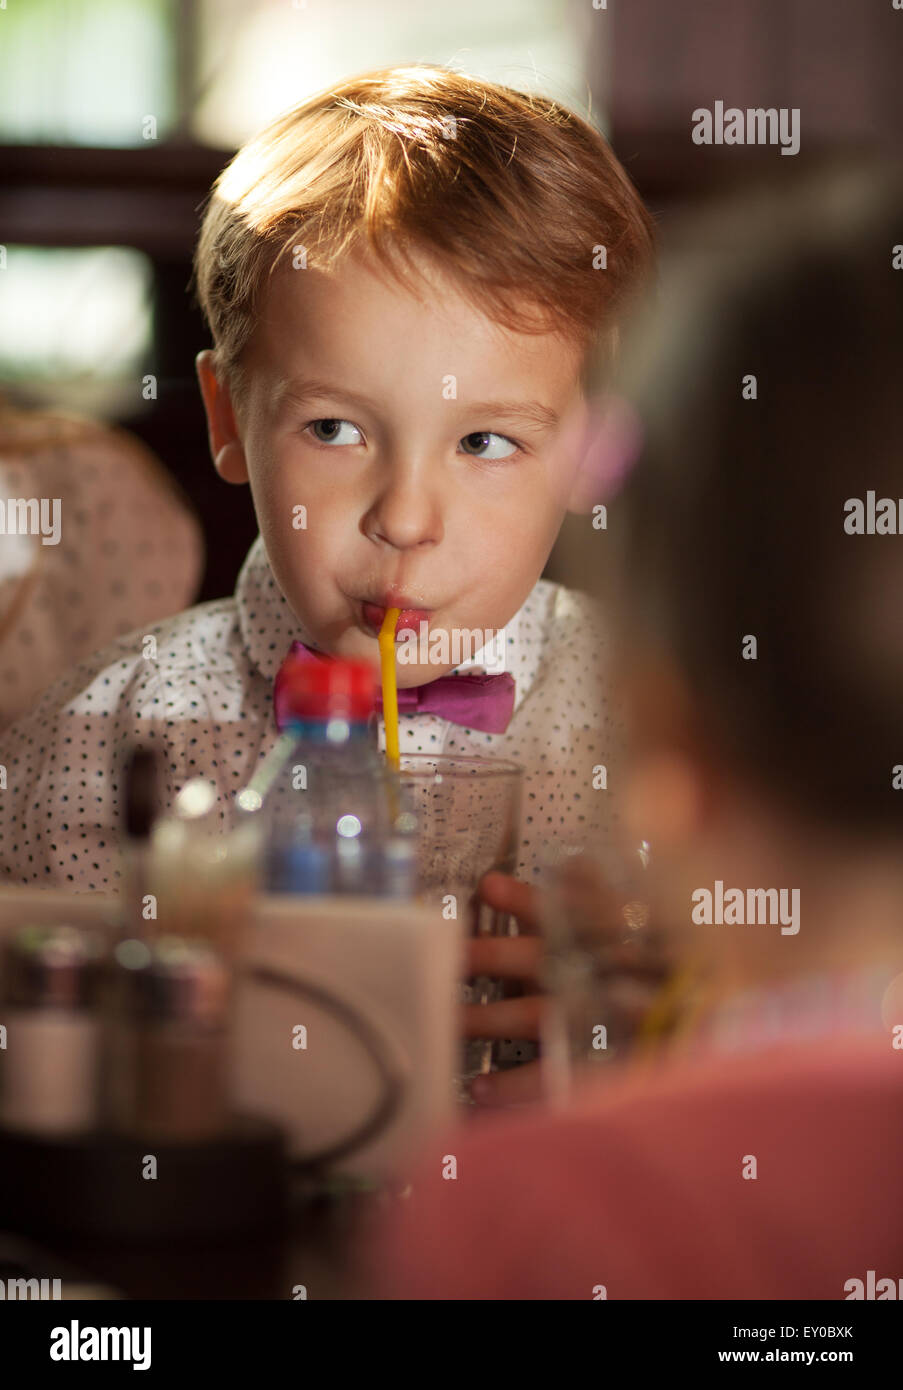 Little boy drinking with tubule - Stock Image